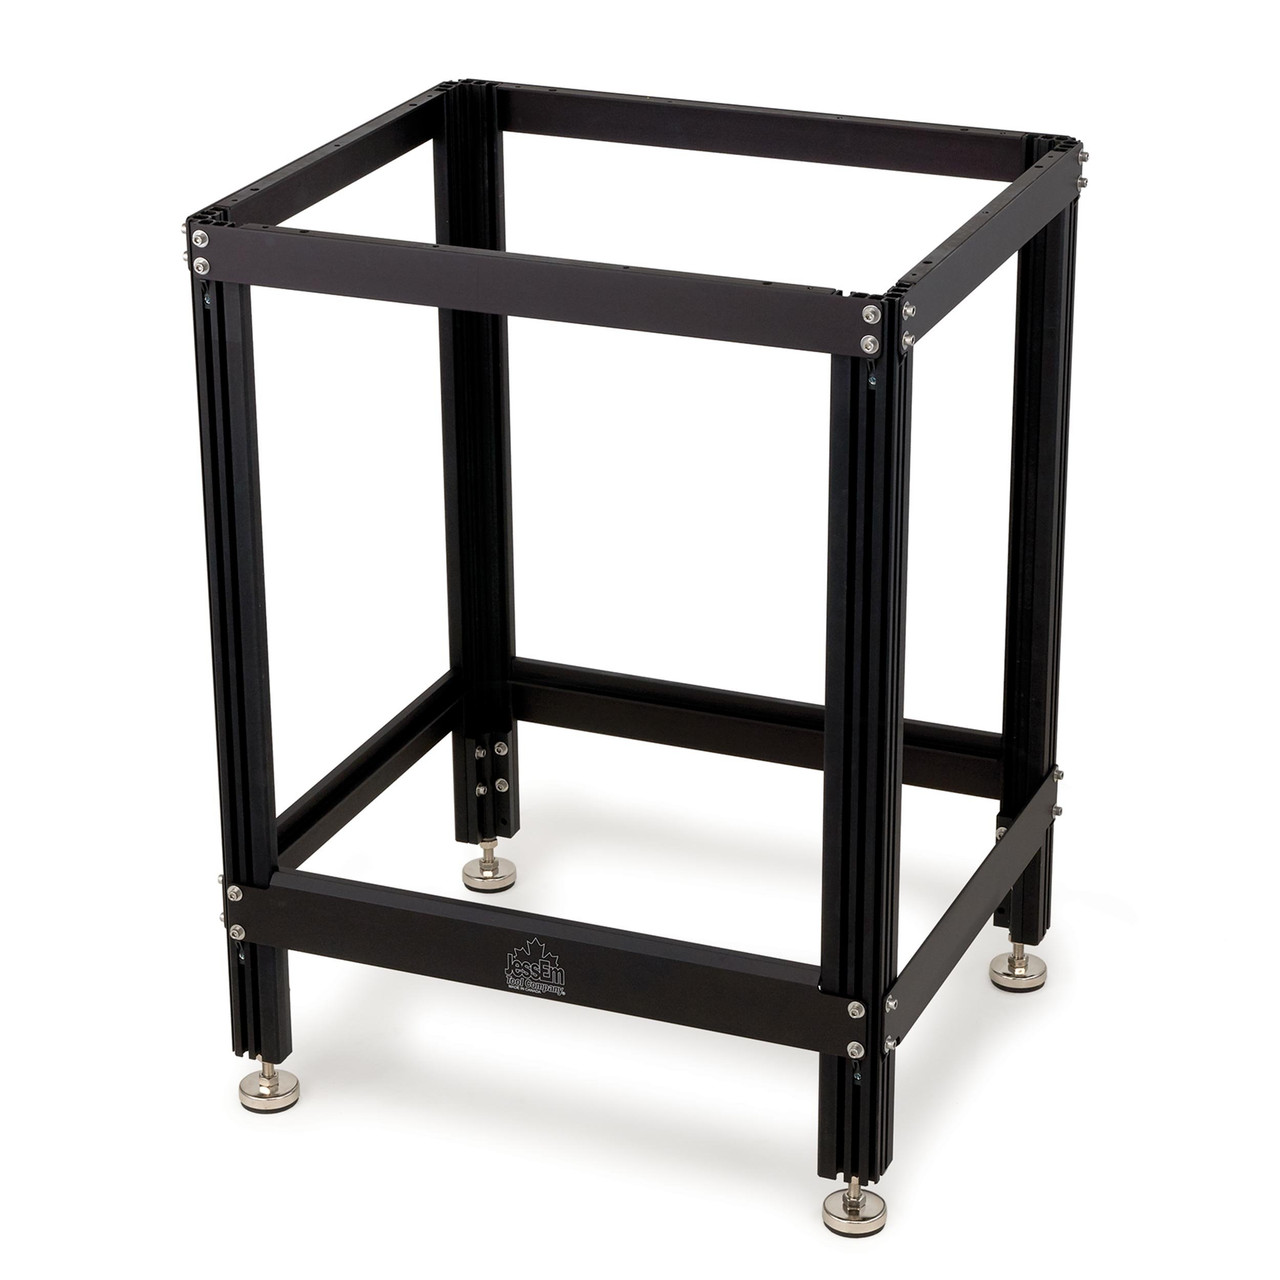 JessEm 05100 ALTS Deluxe Aluminum Router Table Stand